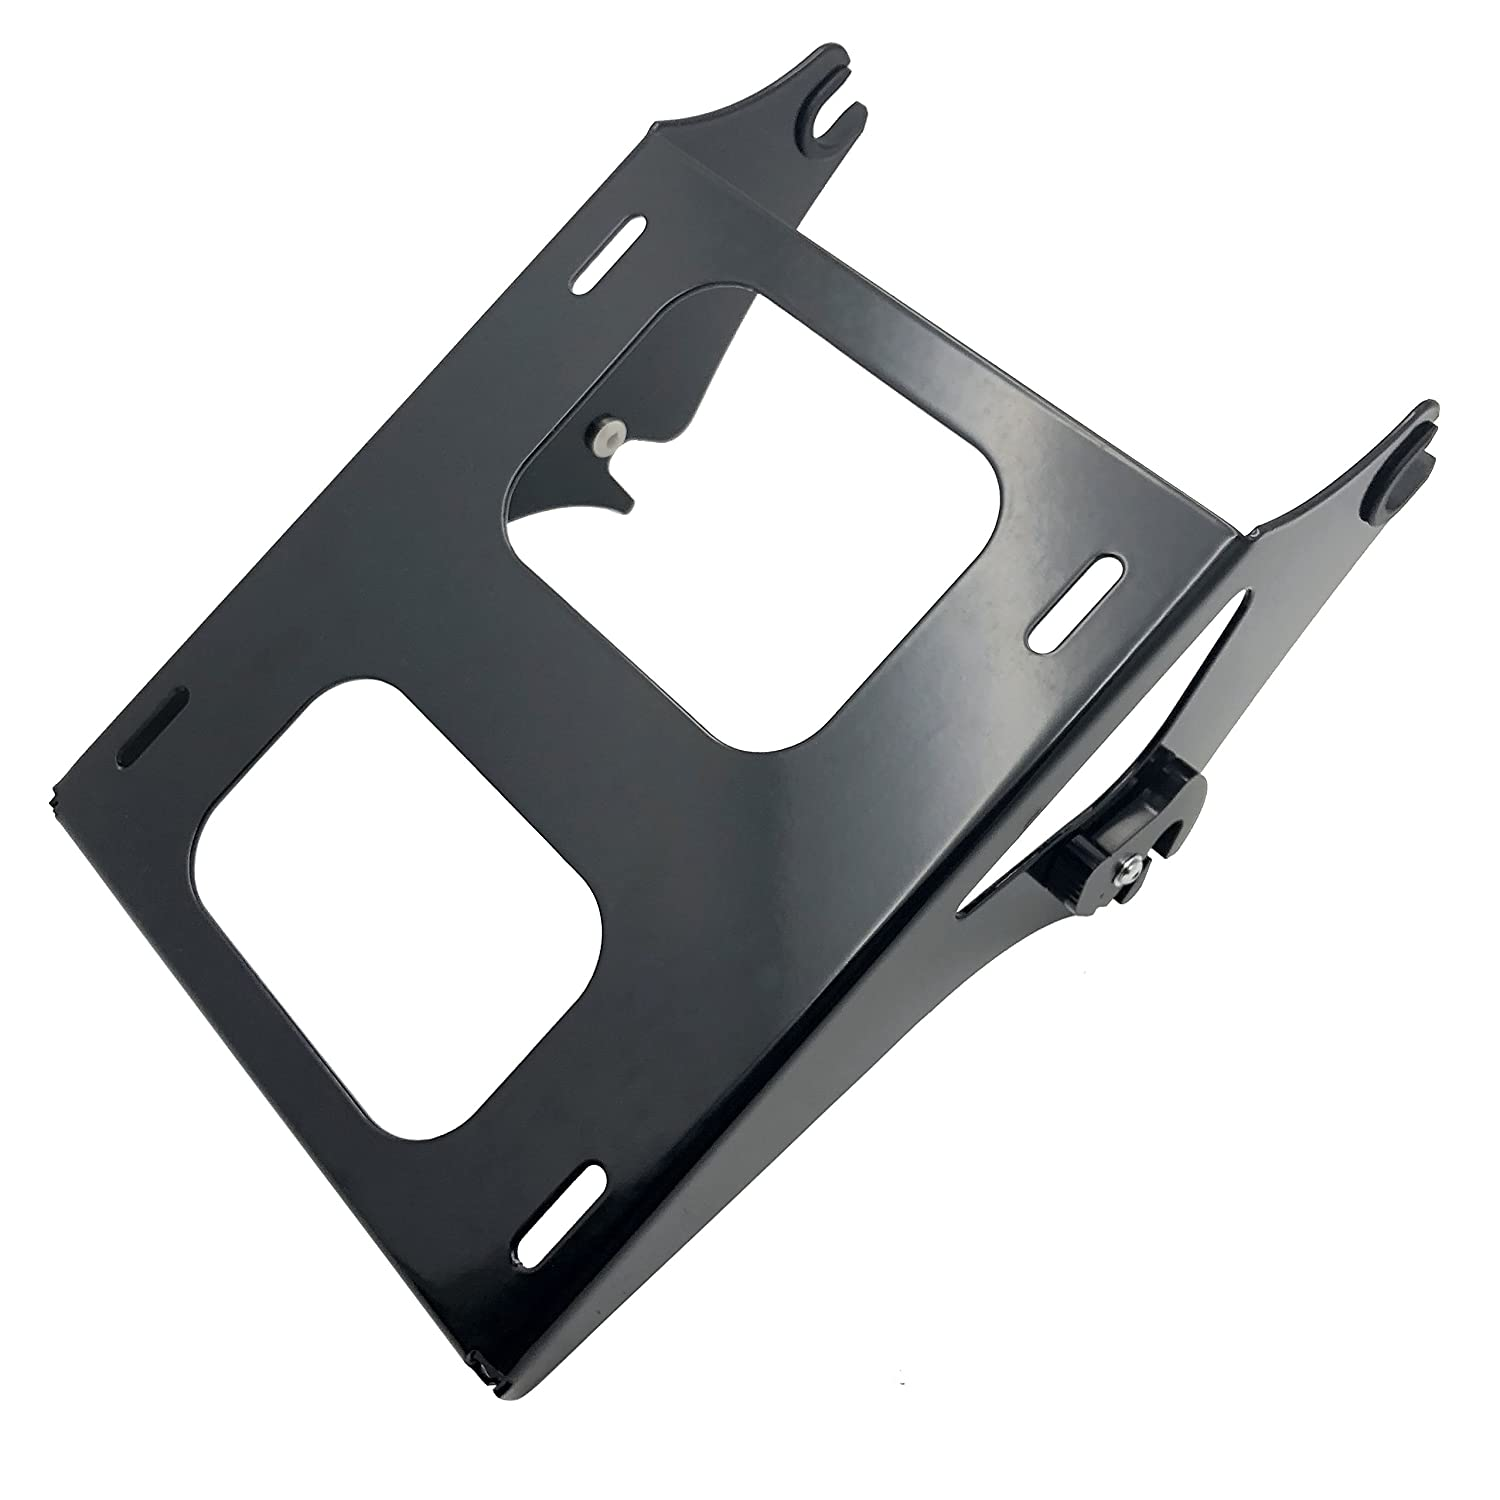 XKMT Black Detachable 2 Two Up Tour Pak Pack Mounting Luggage Rack For Harley Touring Road King Street Glide Road Glide 2014-2016